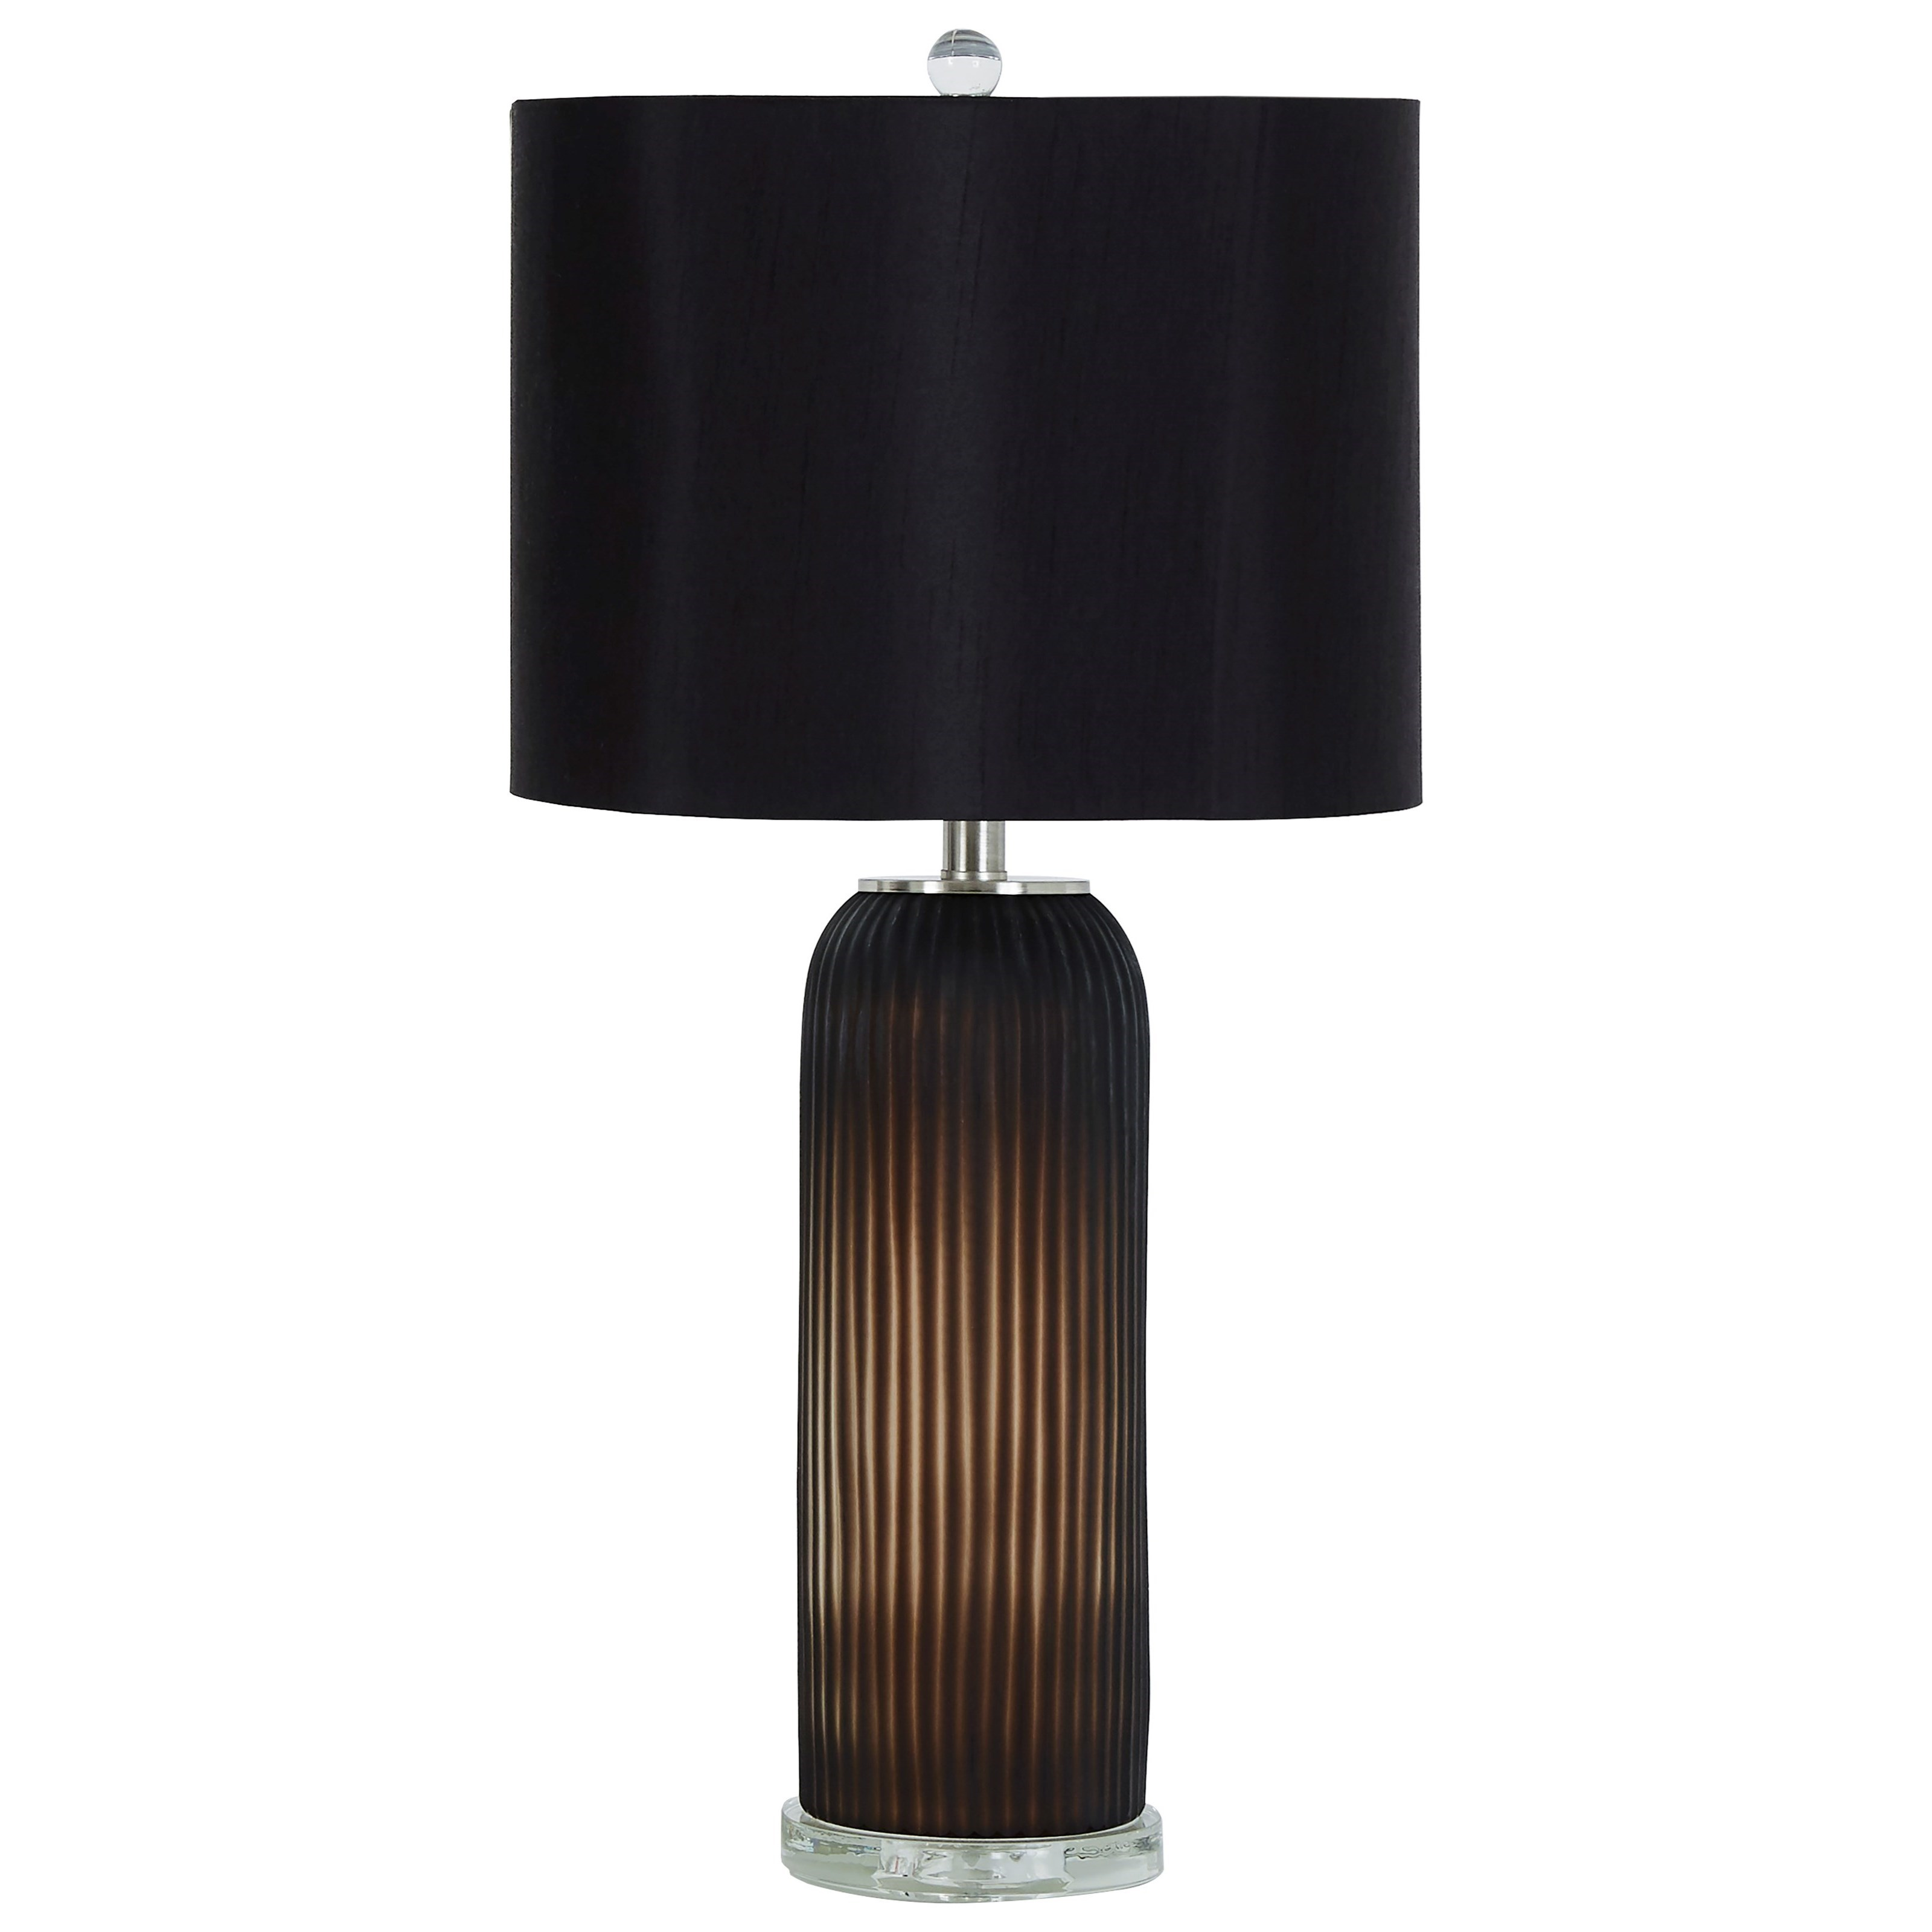 Set of 2 Abaness Black Glass Table Lamps